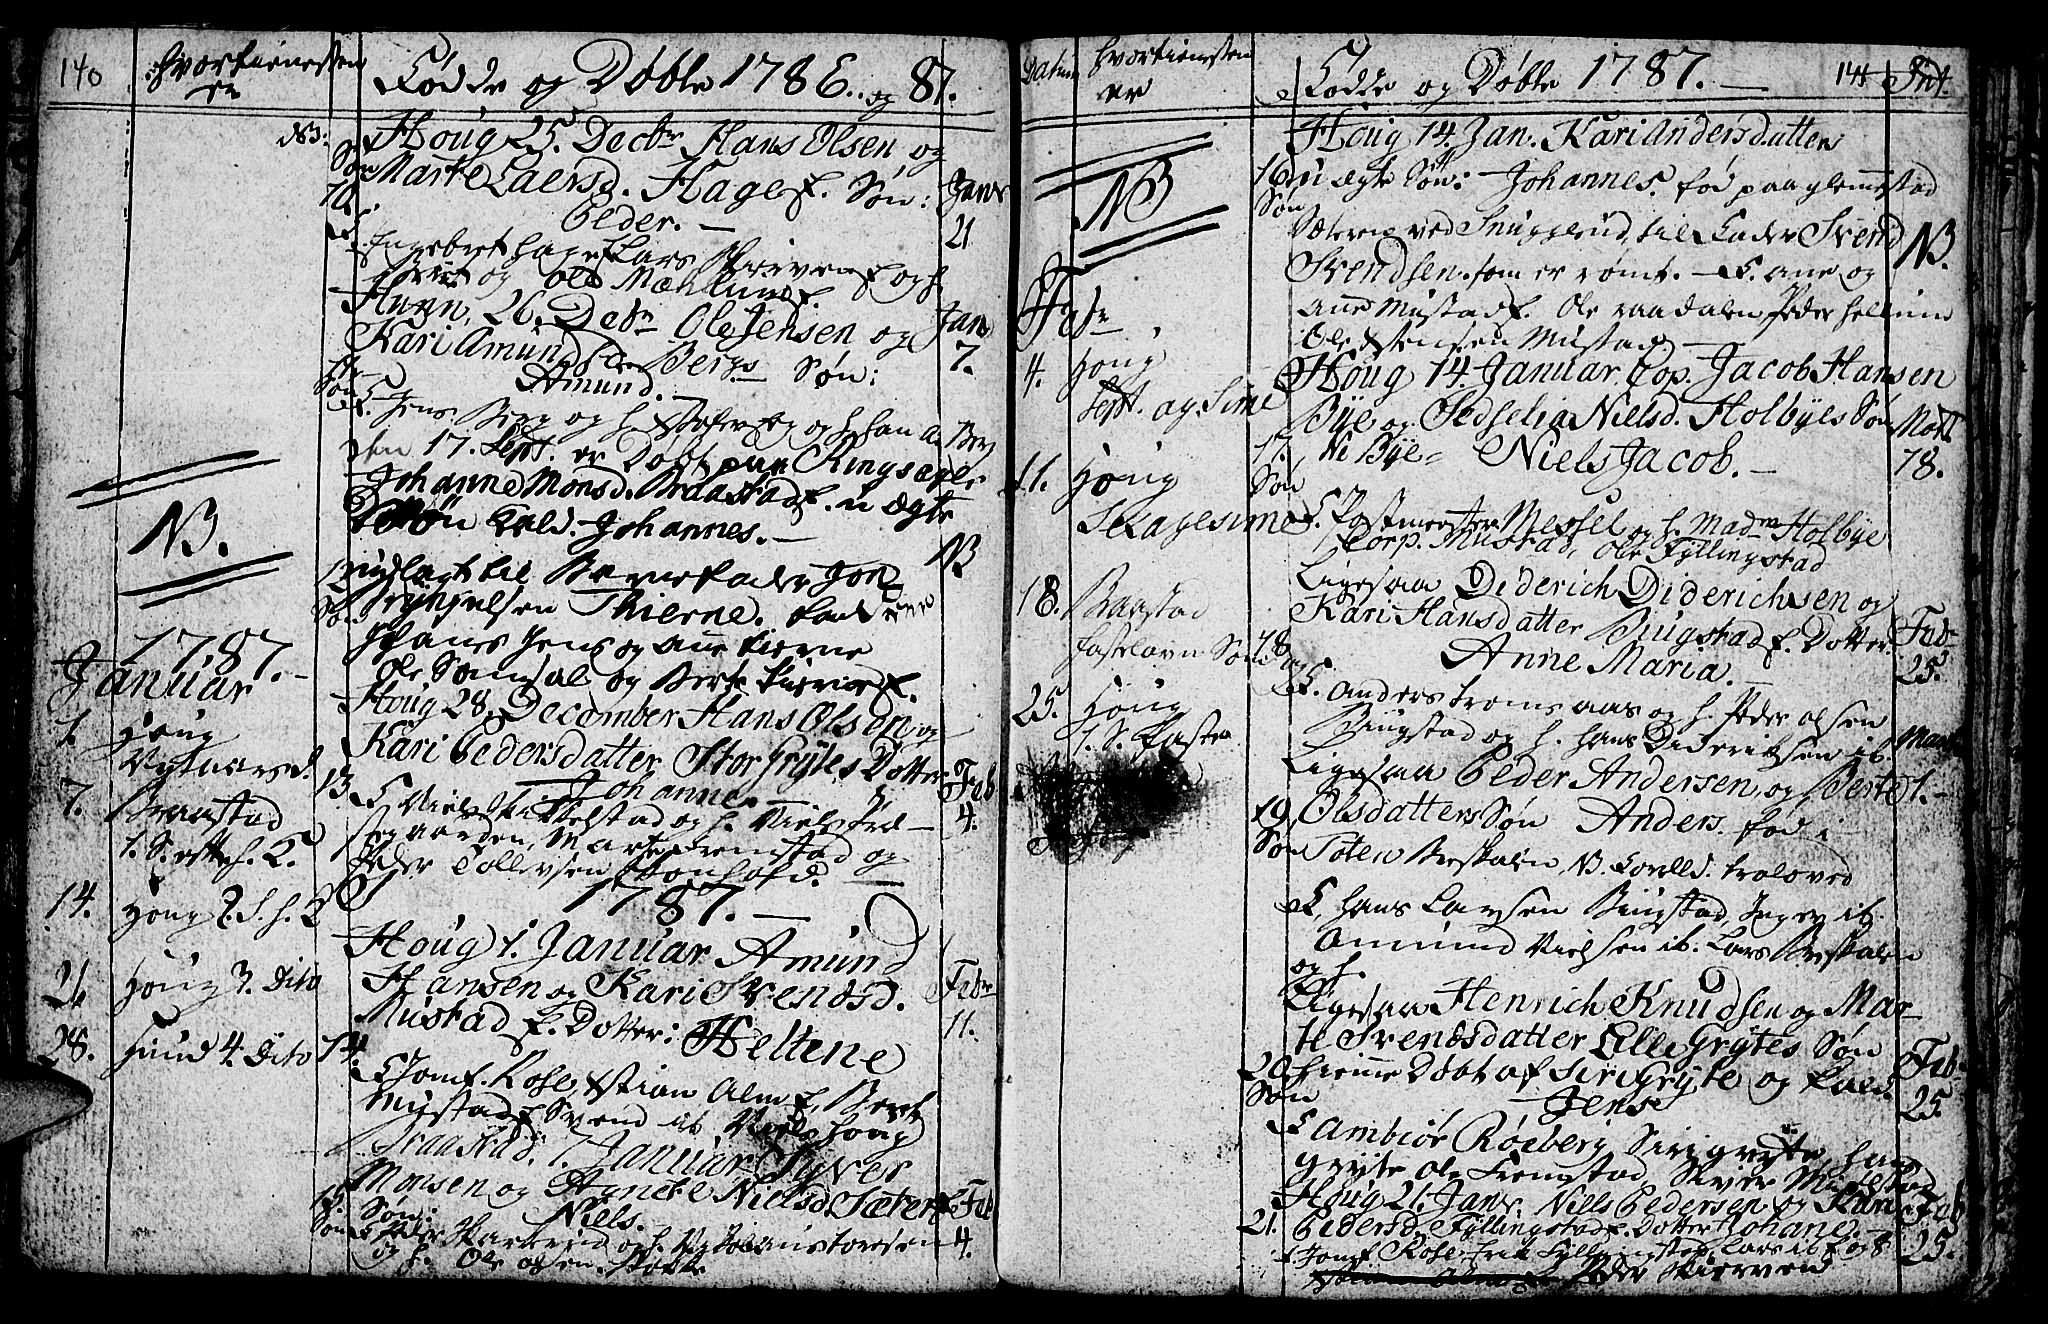 SAH, Vardal prestekontor, H/Ha/Hab/L0001: Parish register (copy) no. 1, 1771-1790, p. 140-141